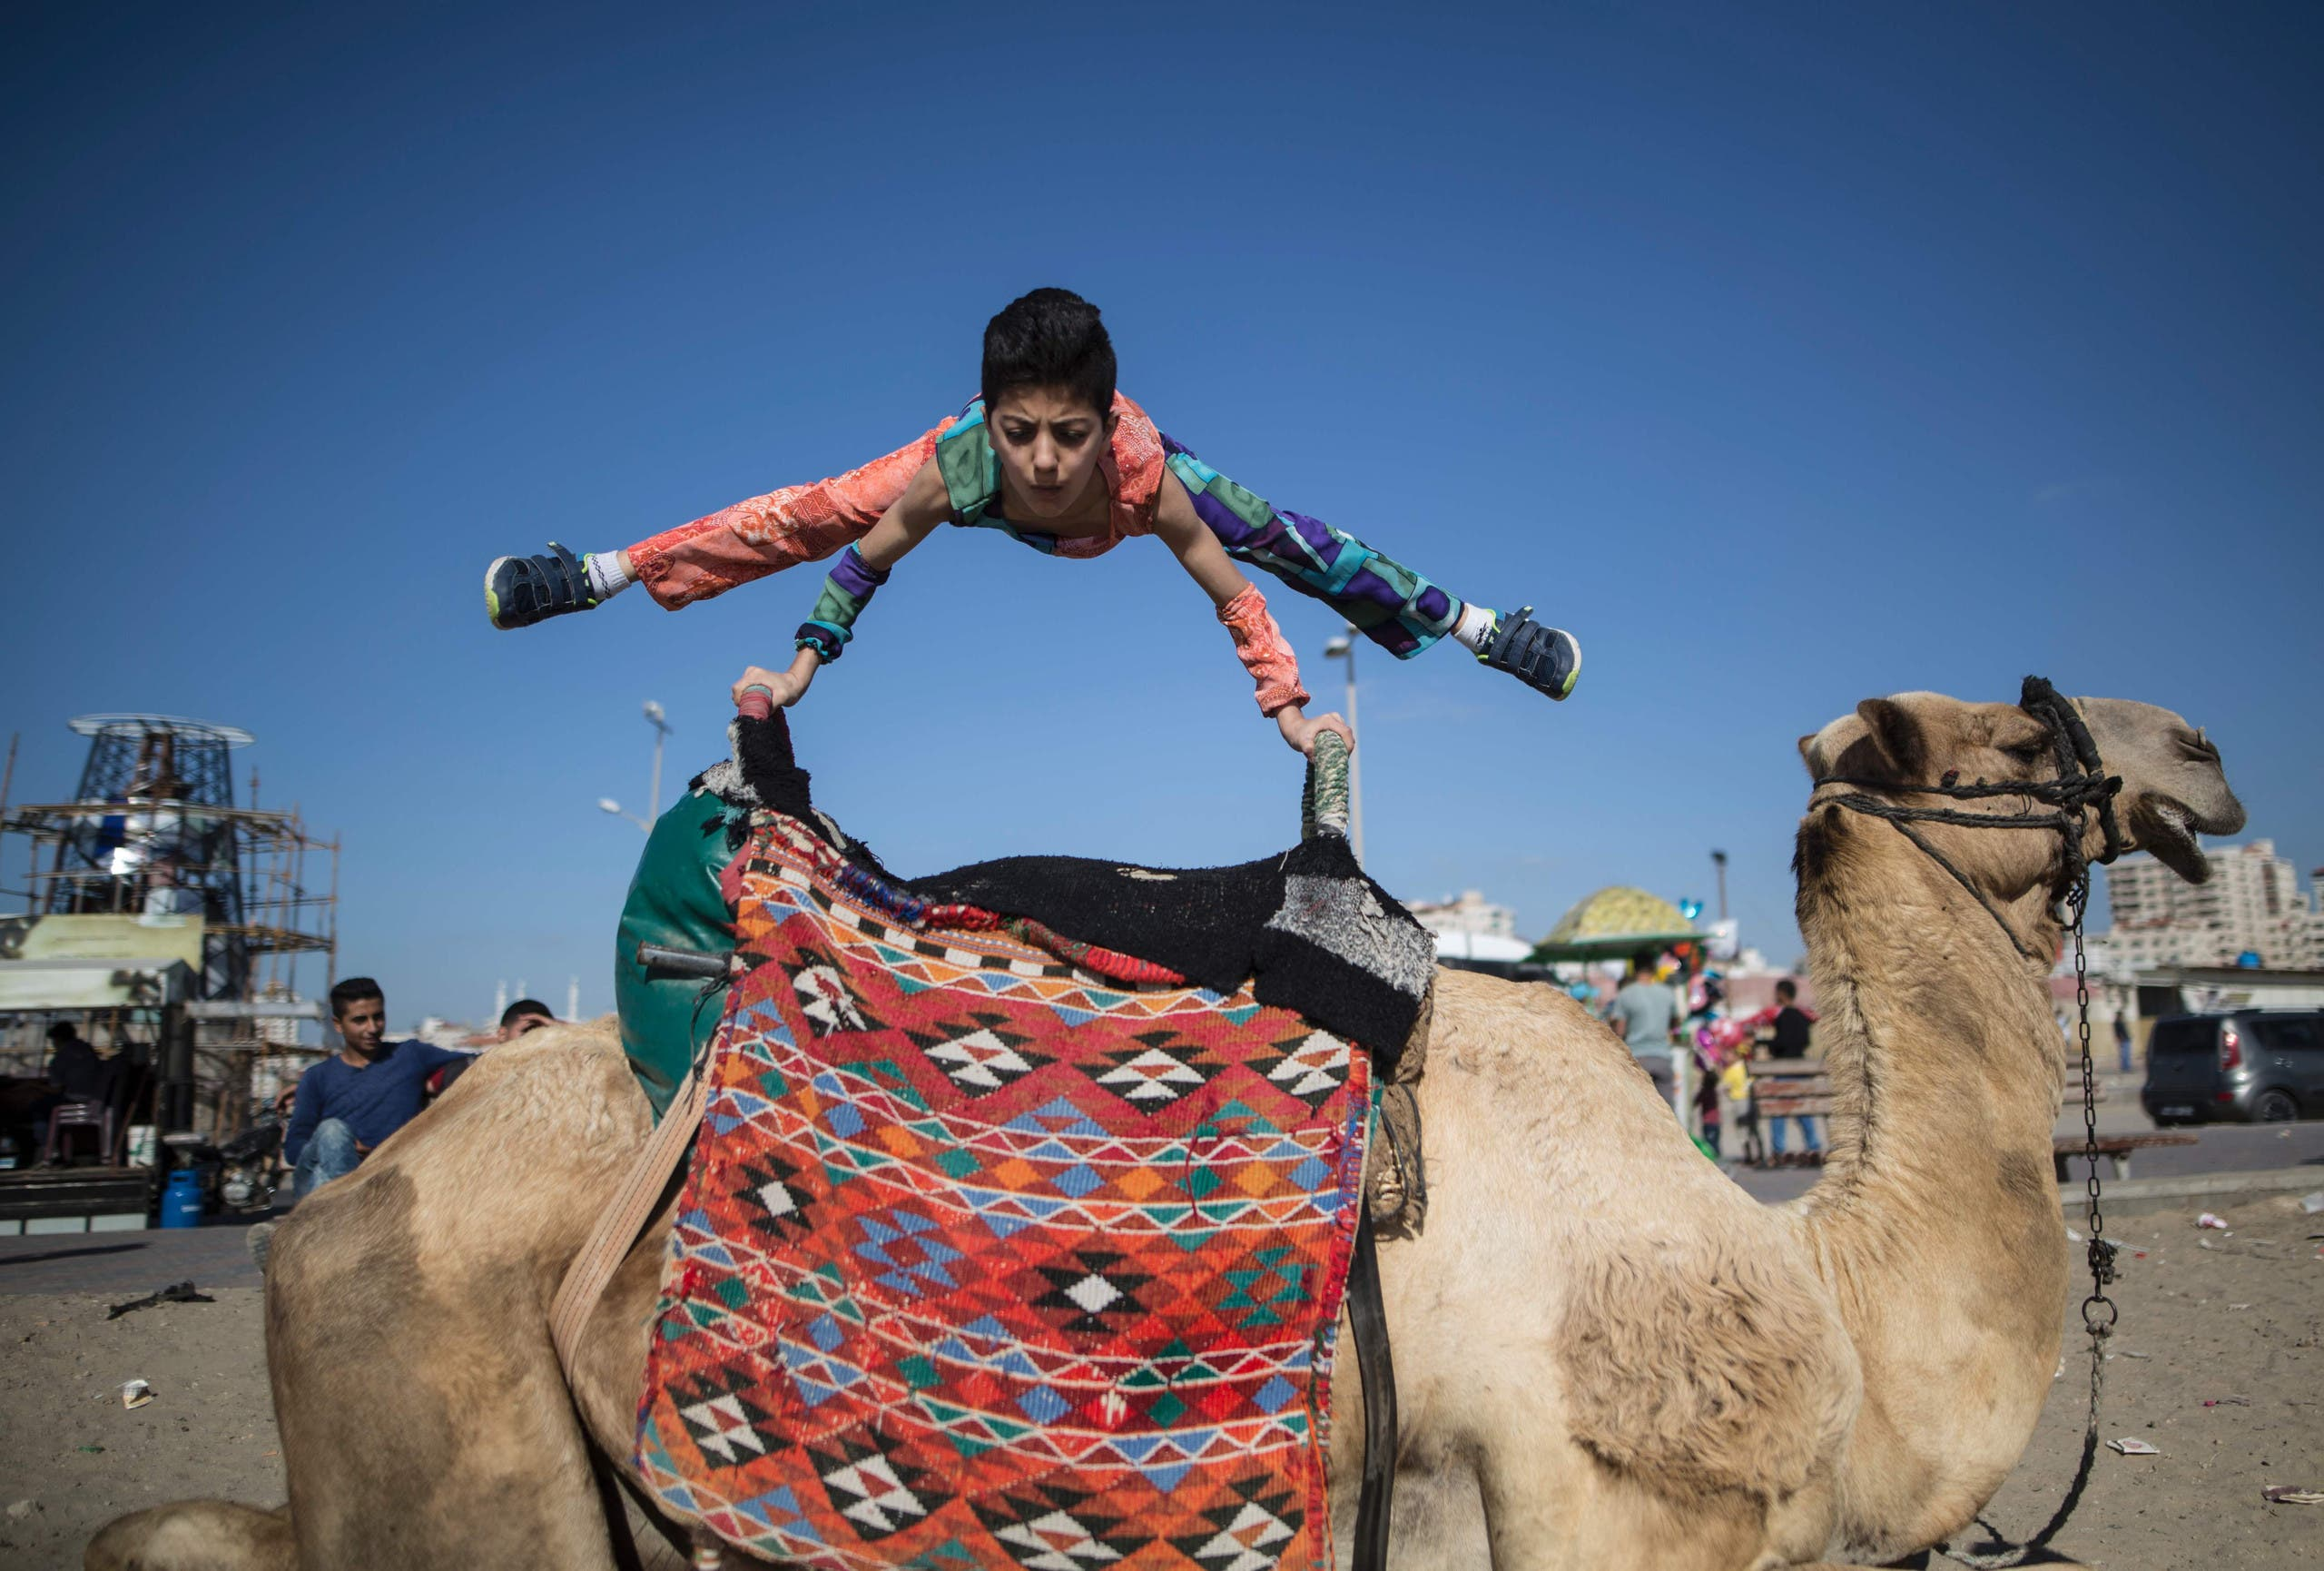 Mohammed, just 1.37 metres tall and weighing 29 kilograms, can bend his body in seemingly impossible ways. (AFP)